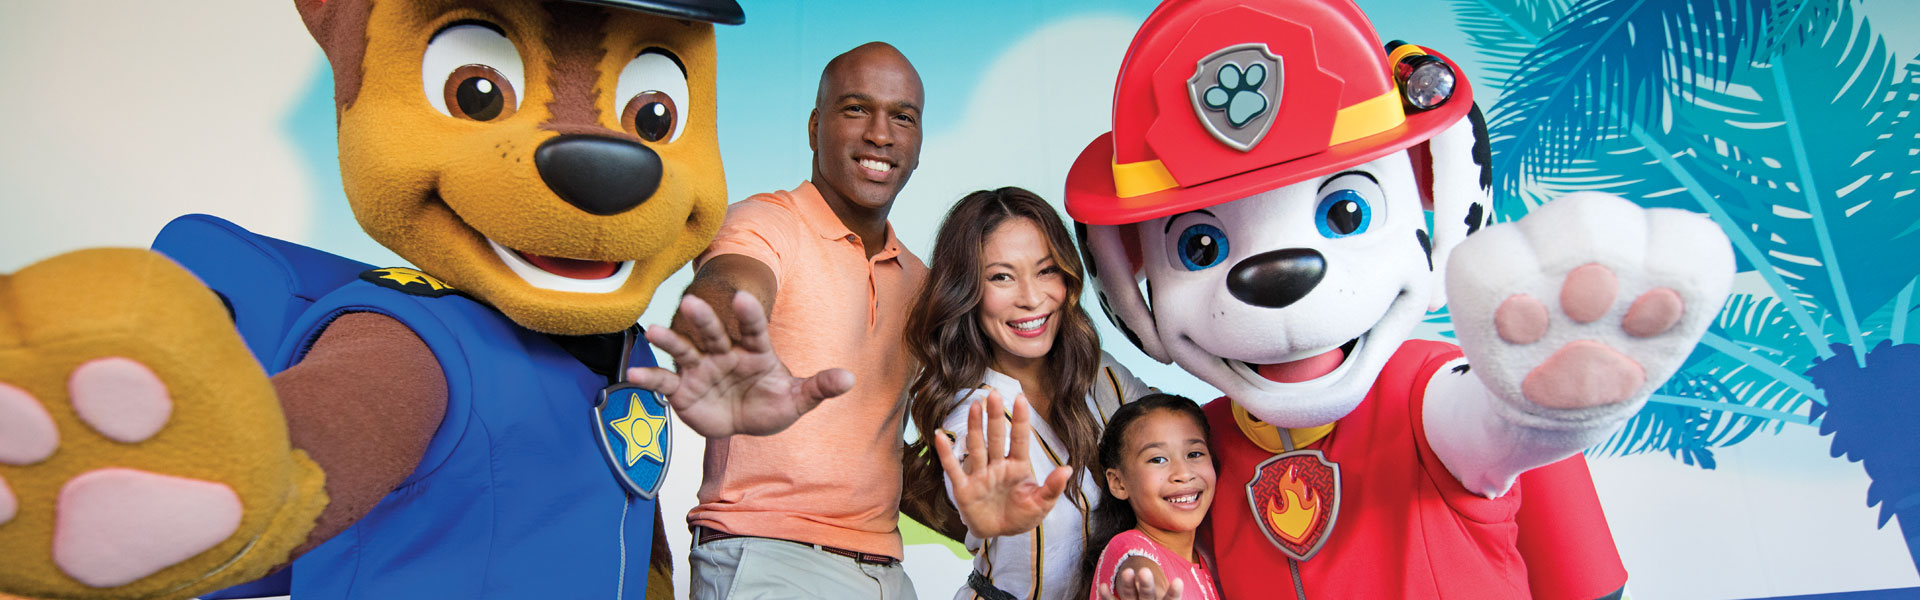 Paw Patrol Live Meet Marshall Chase All Paw Patrol Crew With Experiences By Nick